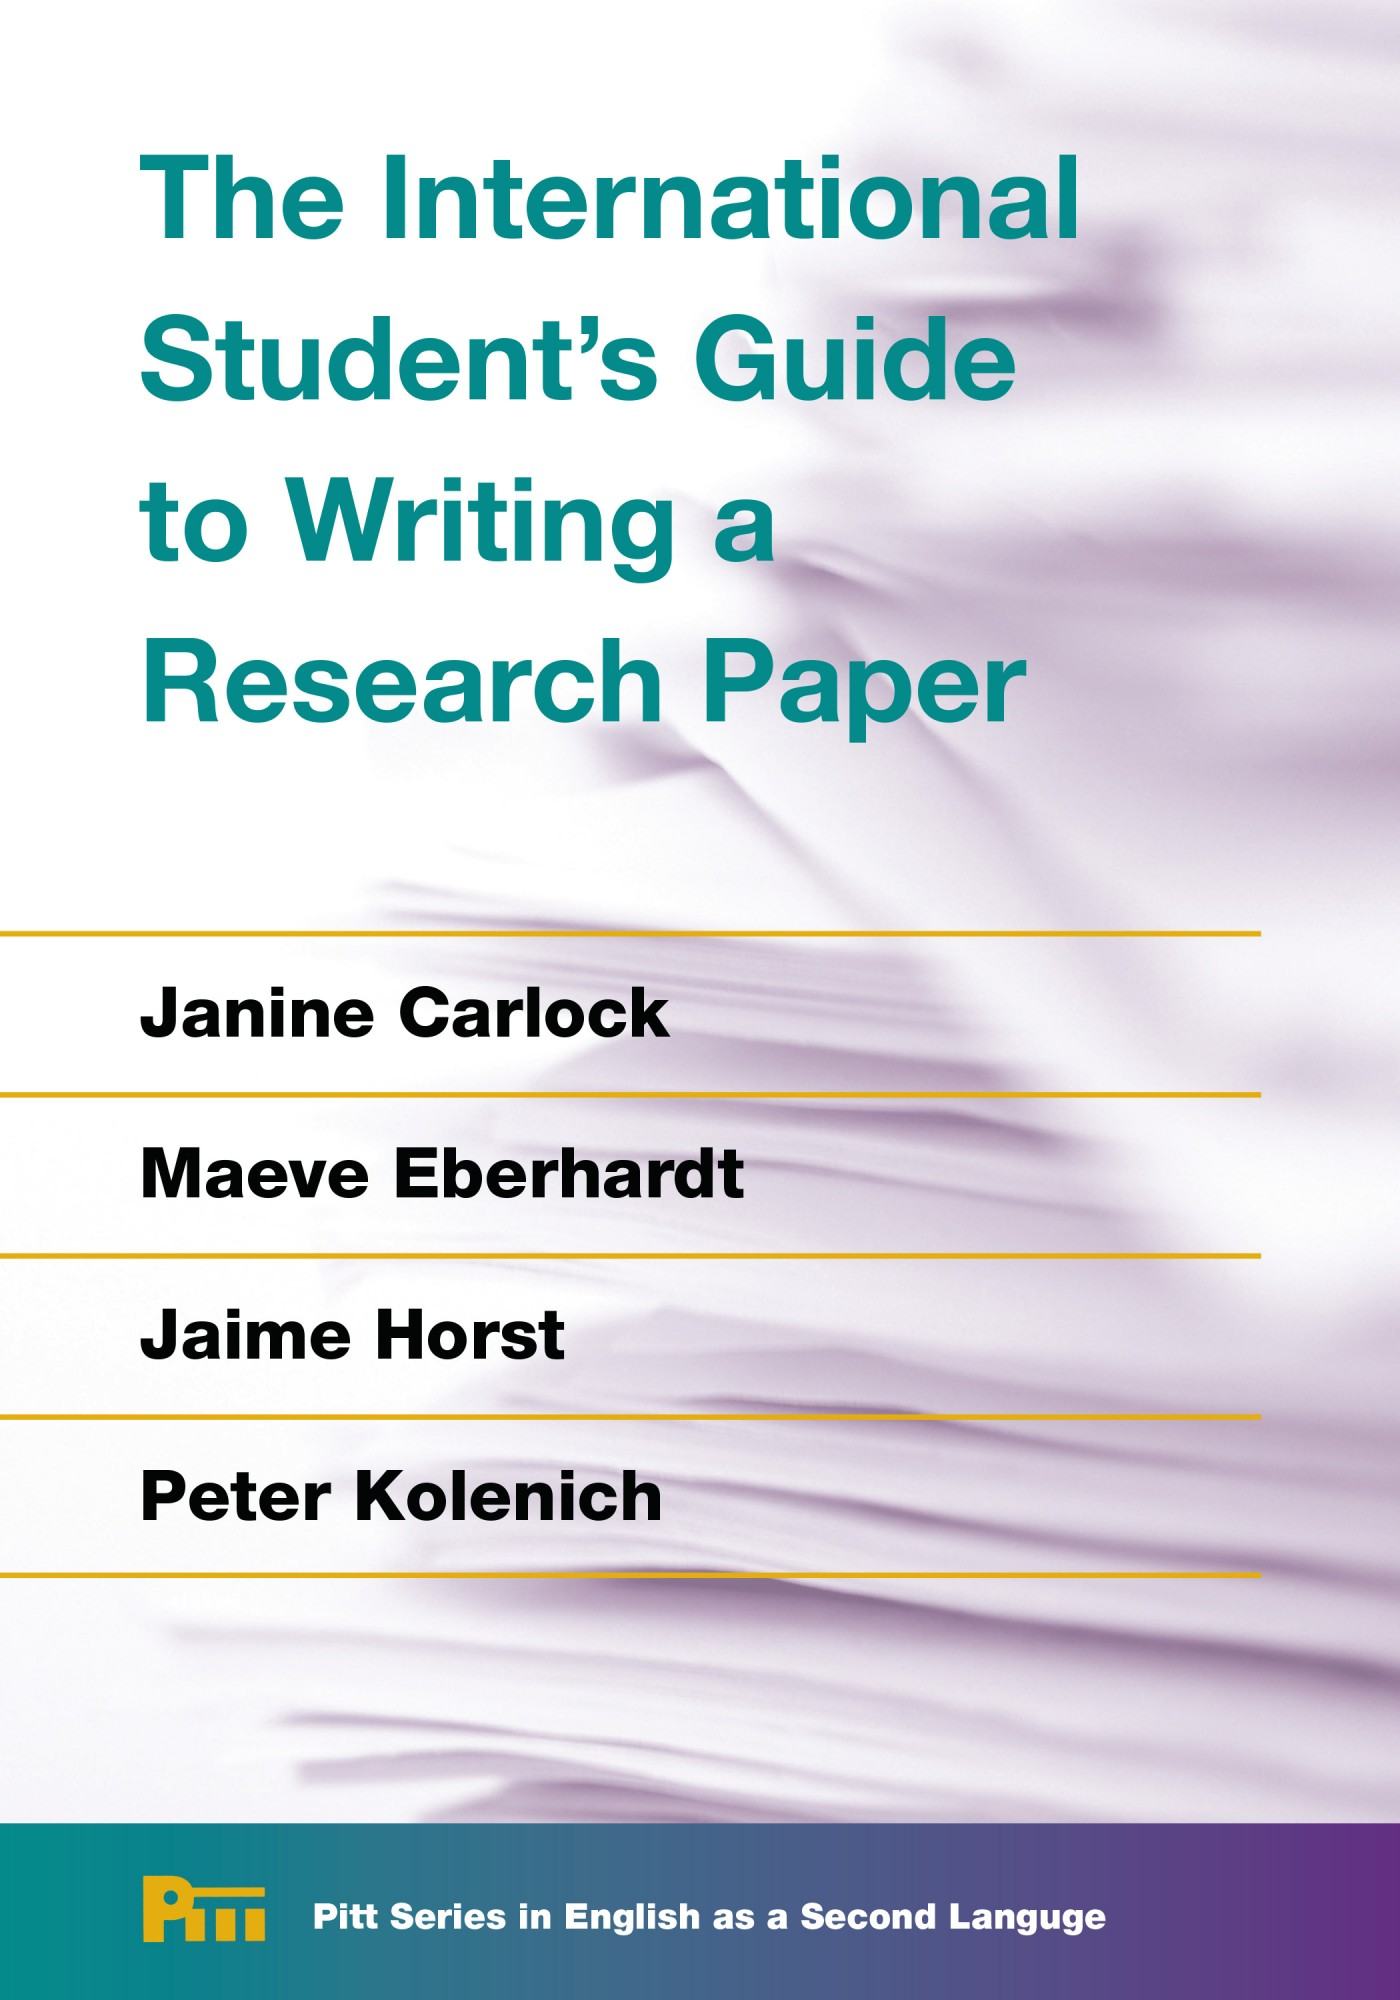 013 Research Paper Striking Writing Papers A Complete Guide 16th Edition Pdf 15th 1400